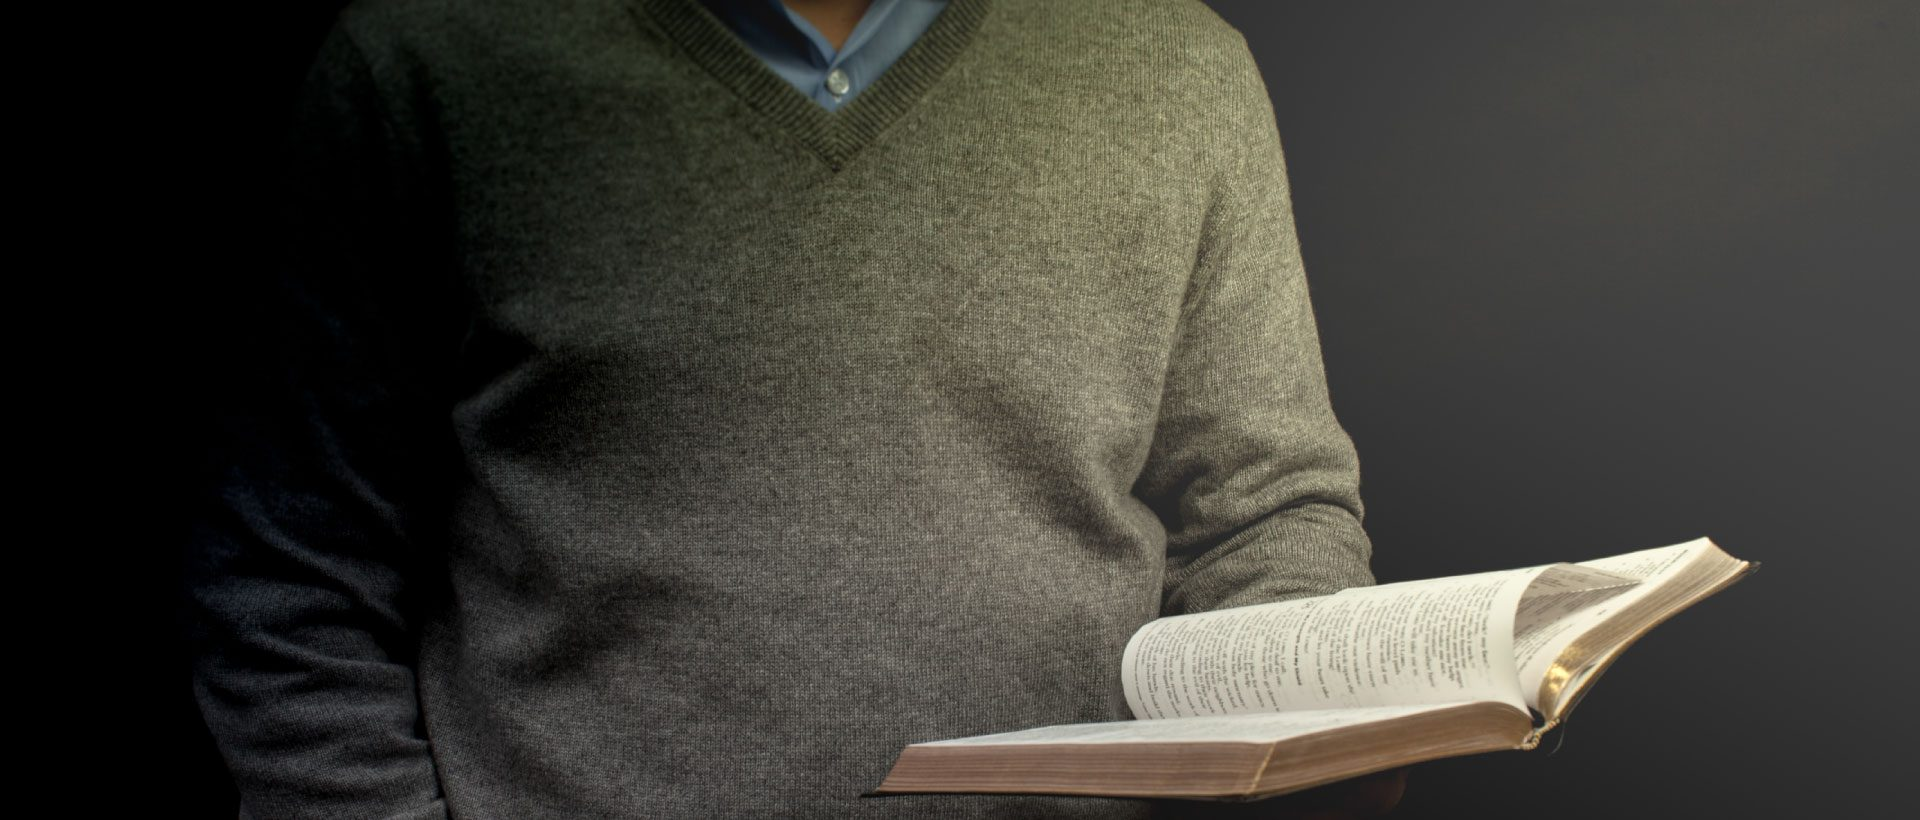 7 Ways New Preachers Bat from the Wrong Side of the Plate